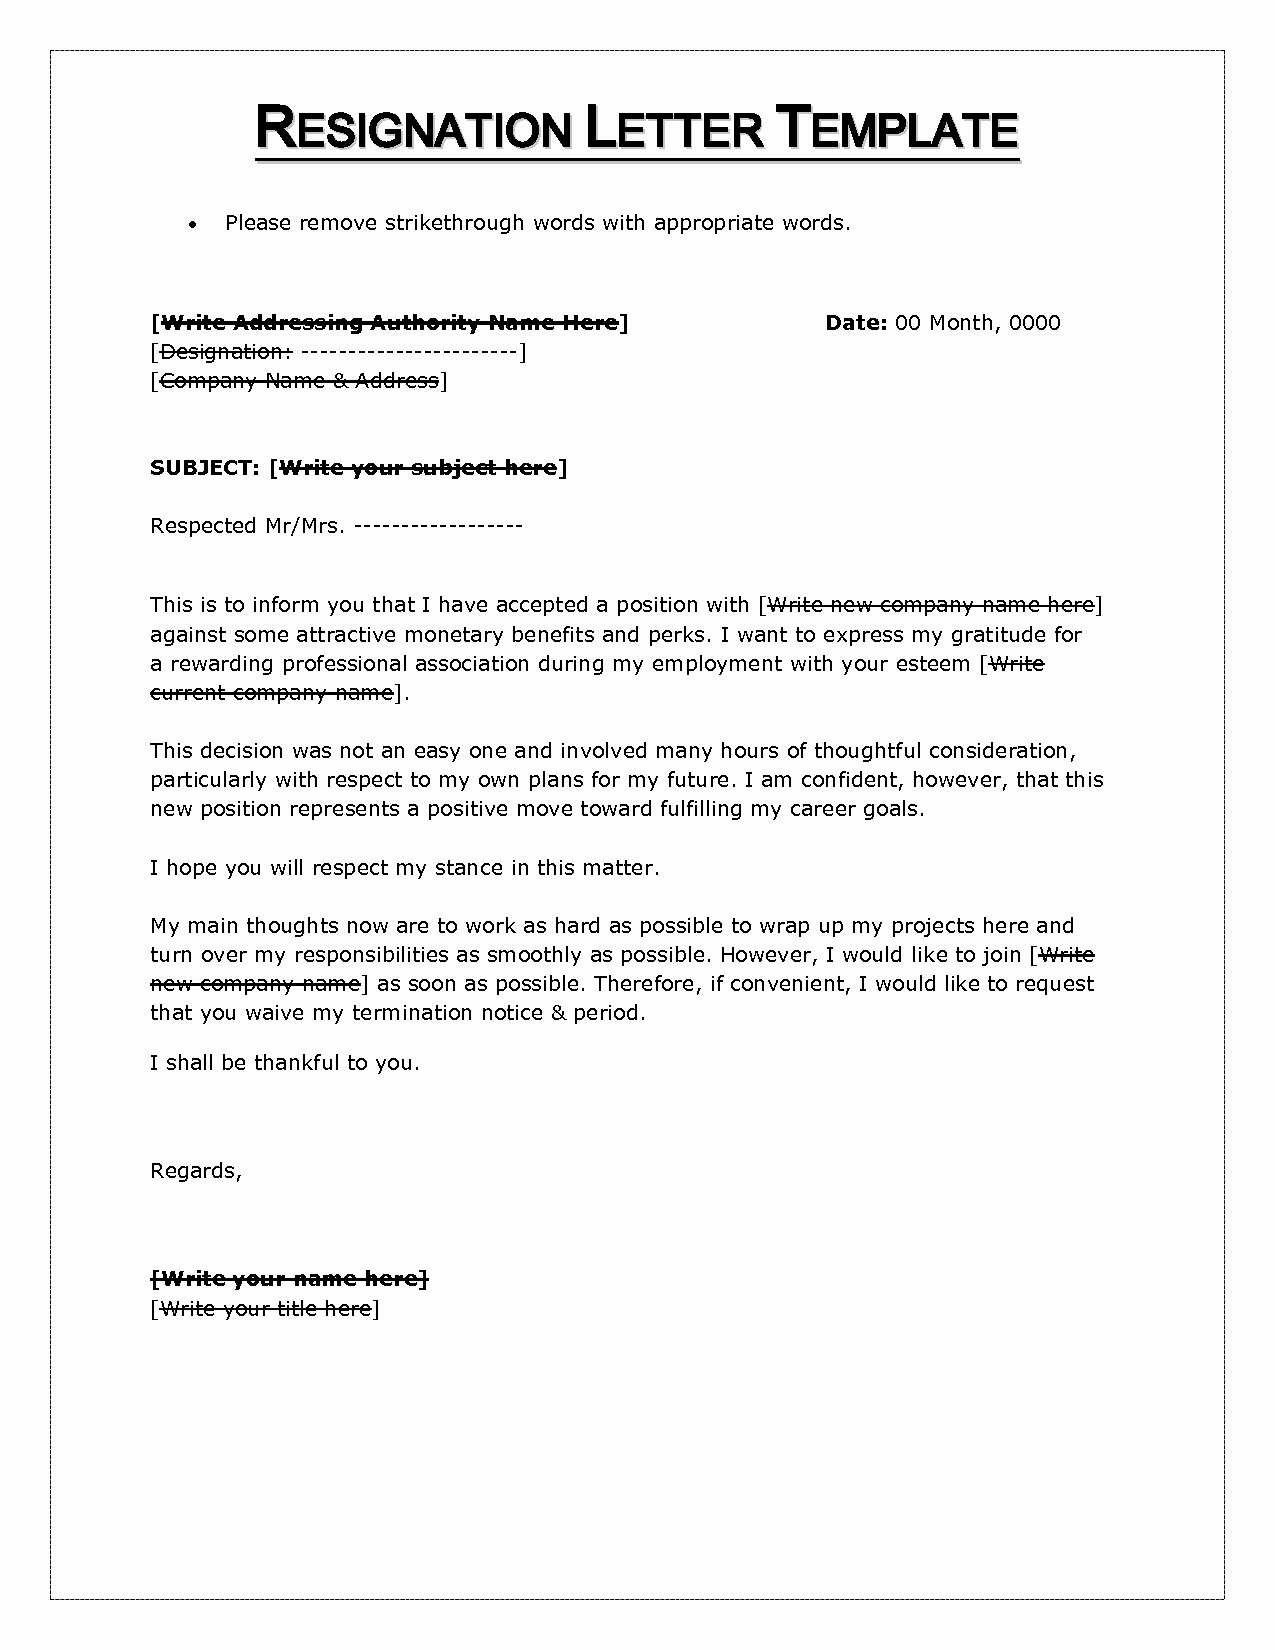 Resignation Letter Templates for Word Best Of Resignation Letter Sample In Word format